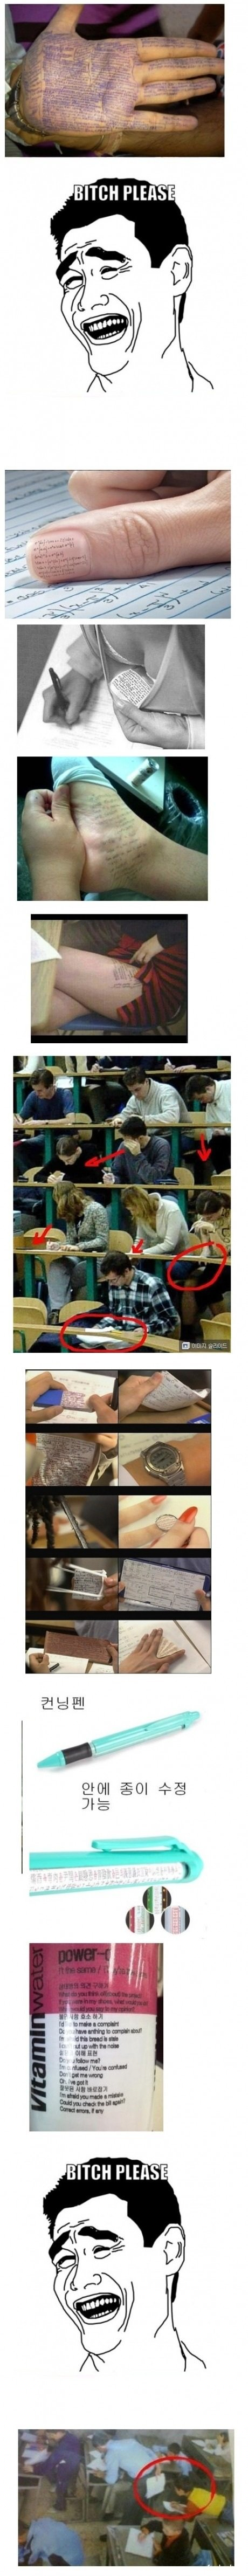 True genius. . BITCH PLEASE. If people put this much effort into simply learning the material the human race would be much better off.